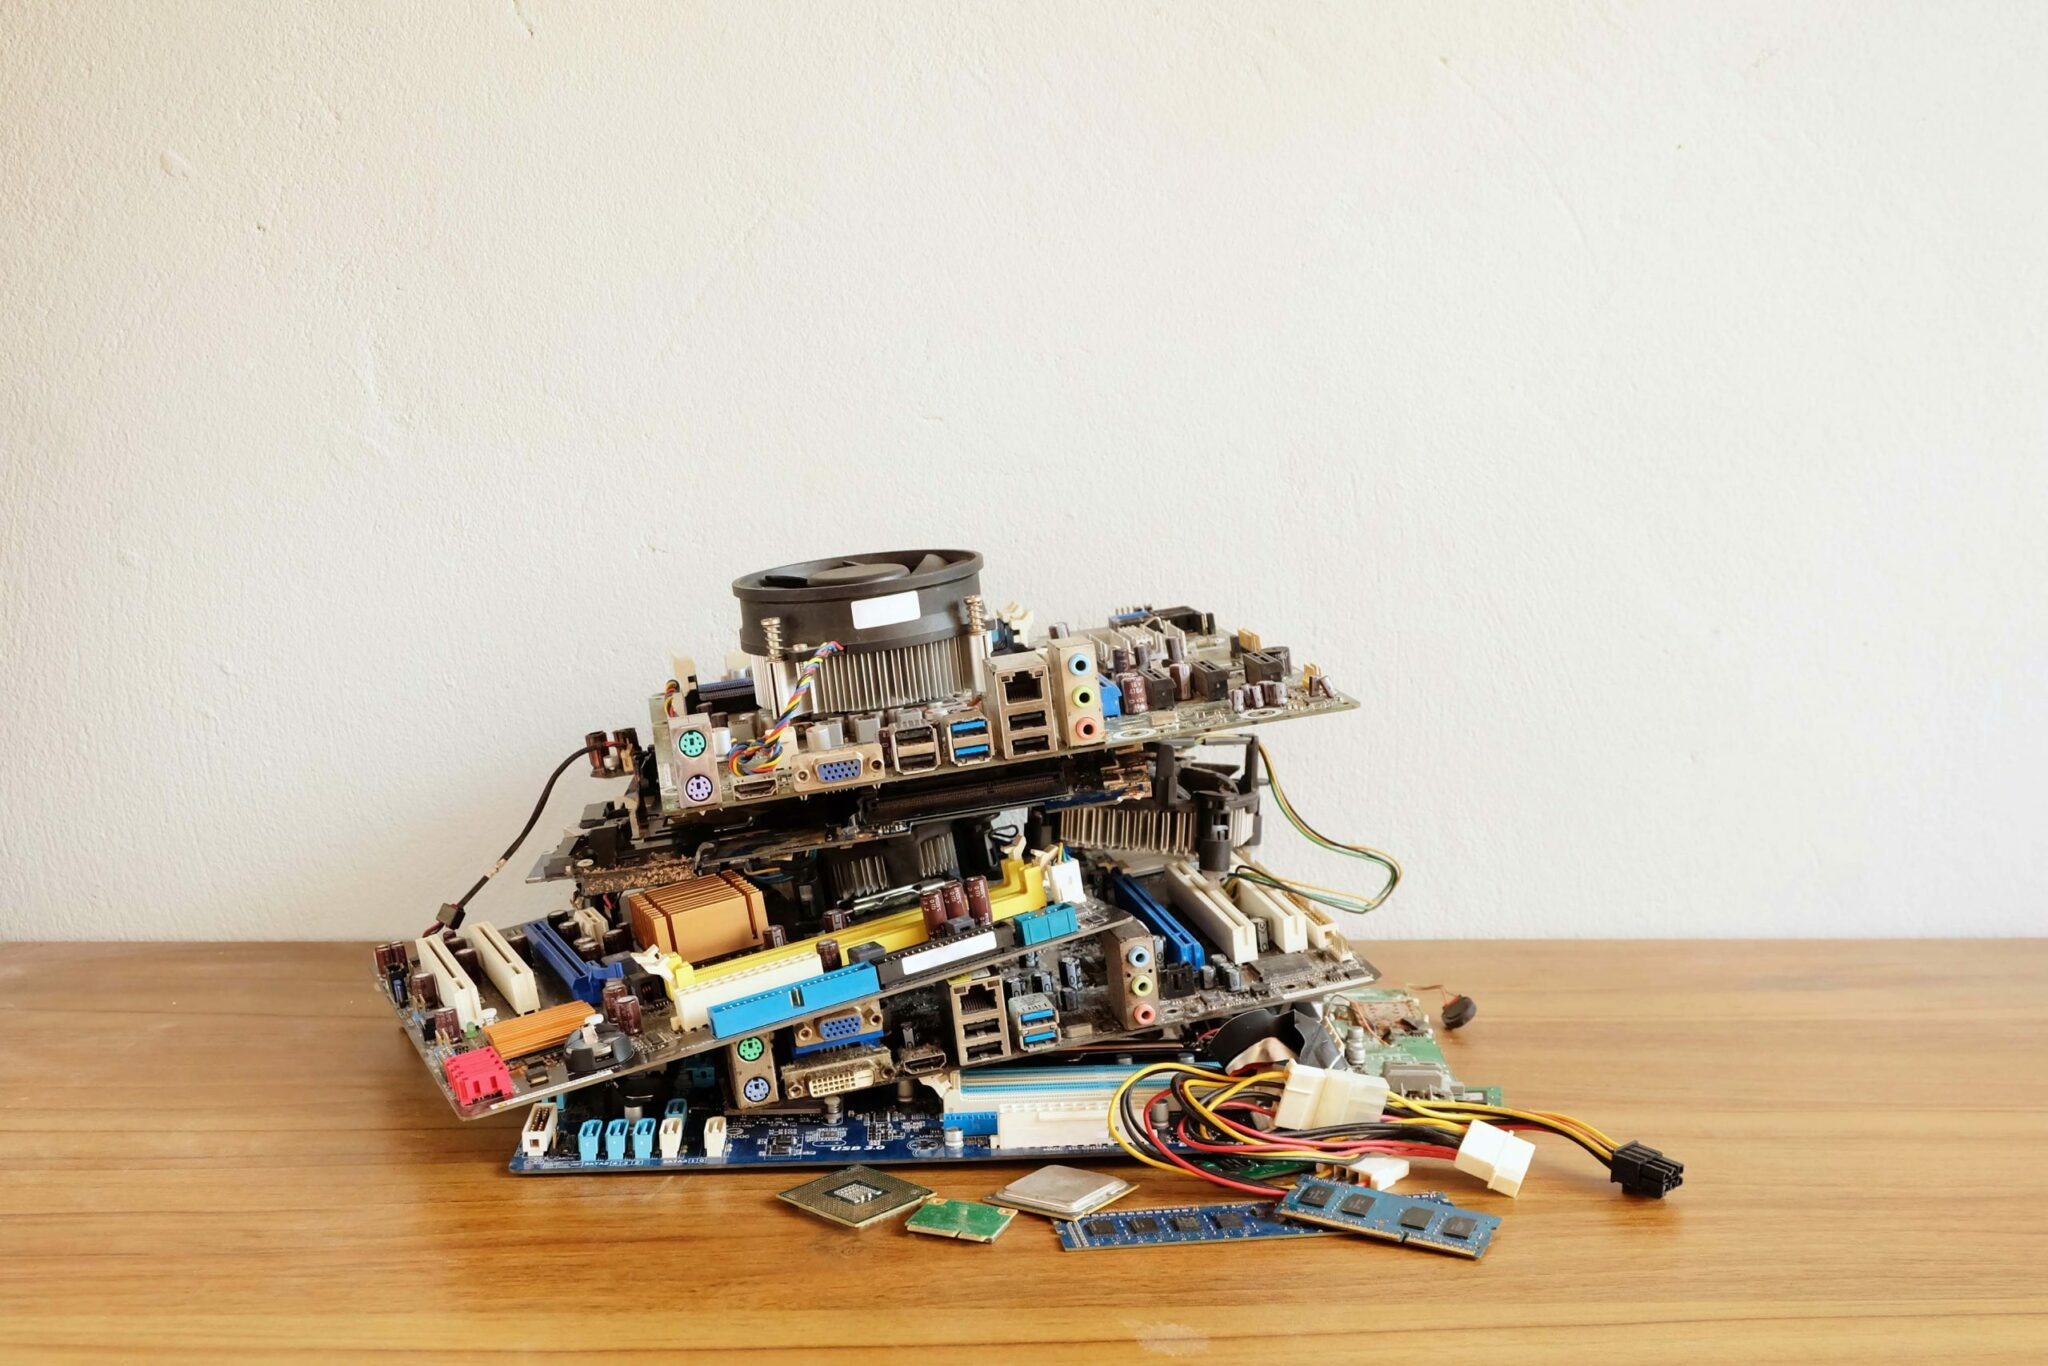 Pile of circuit boards and other electronic equipment